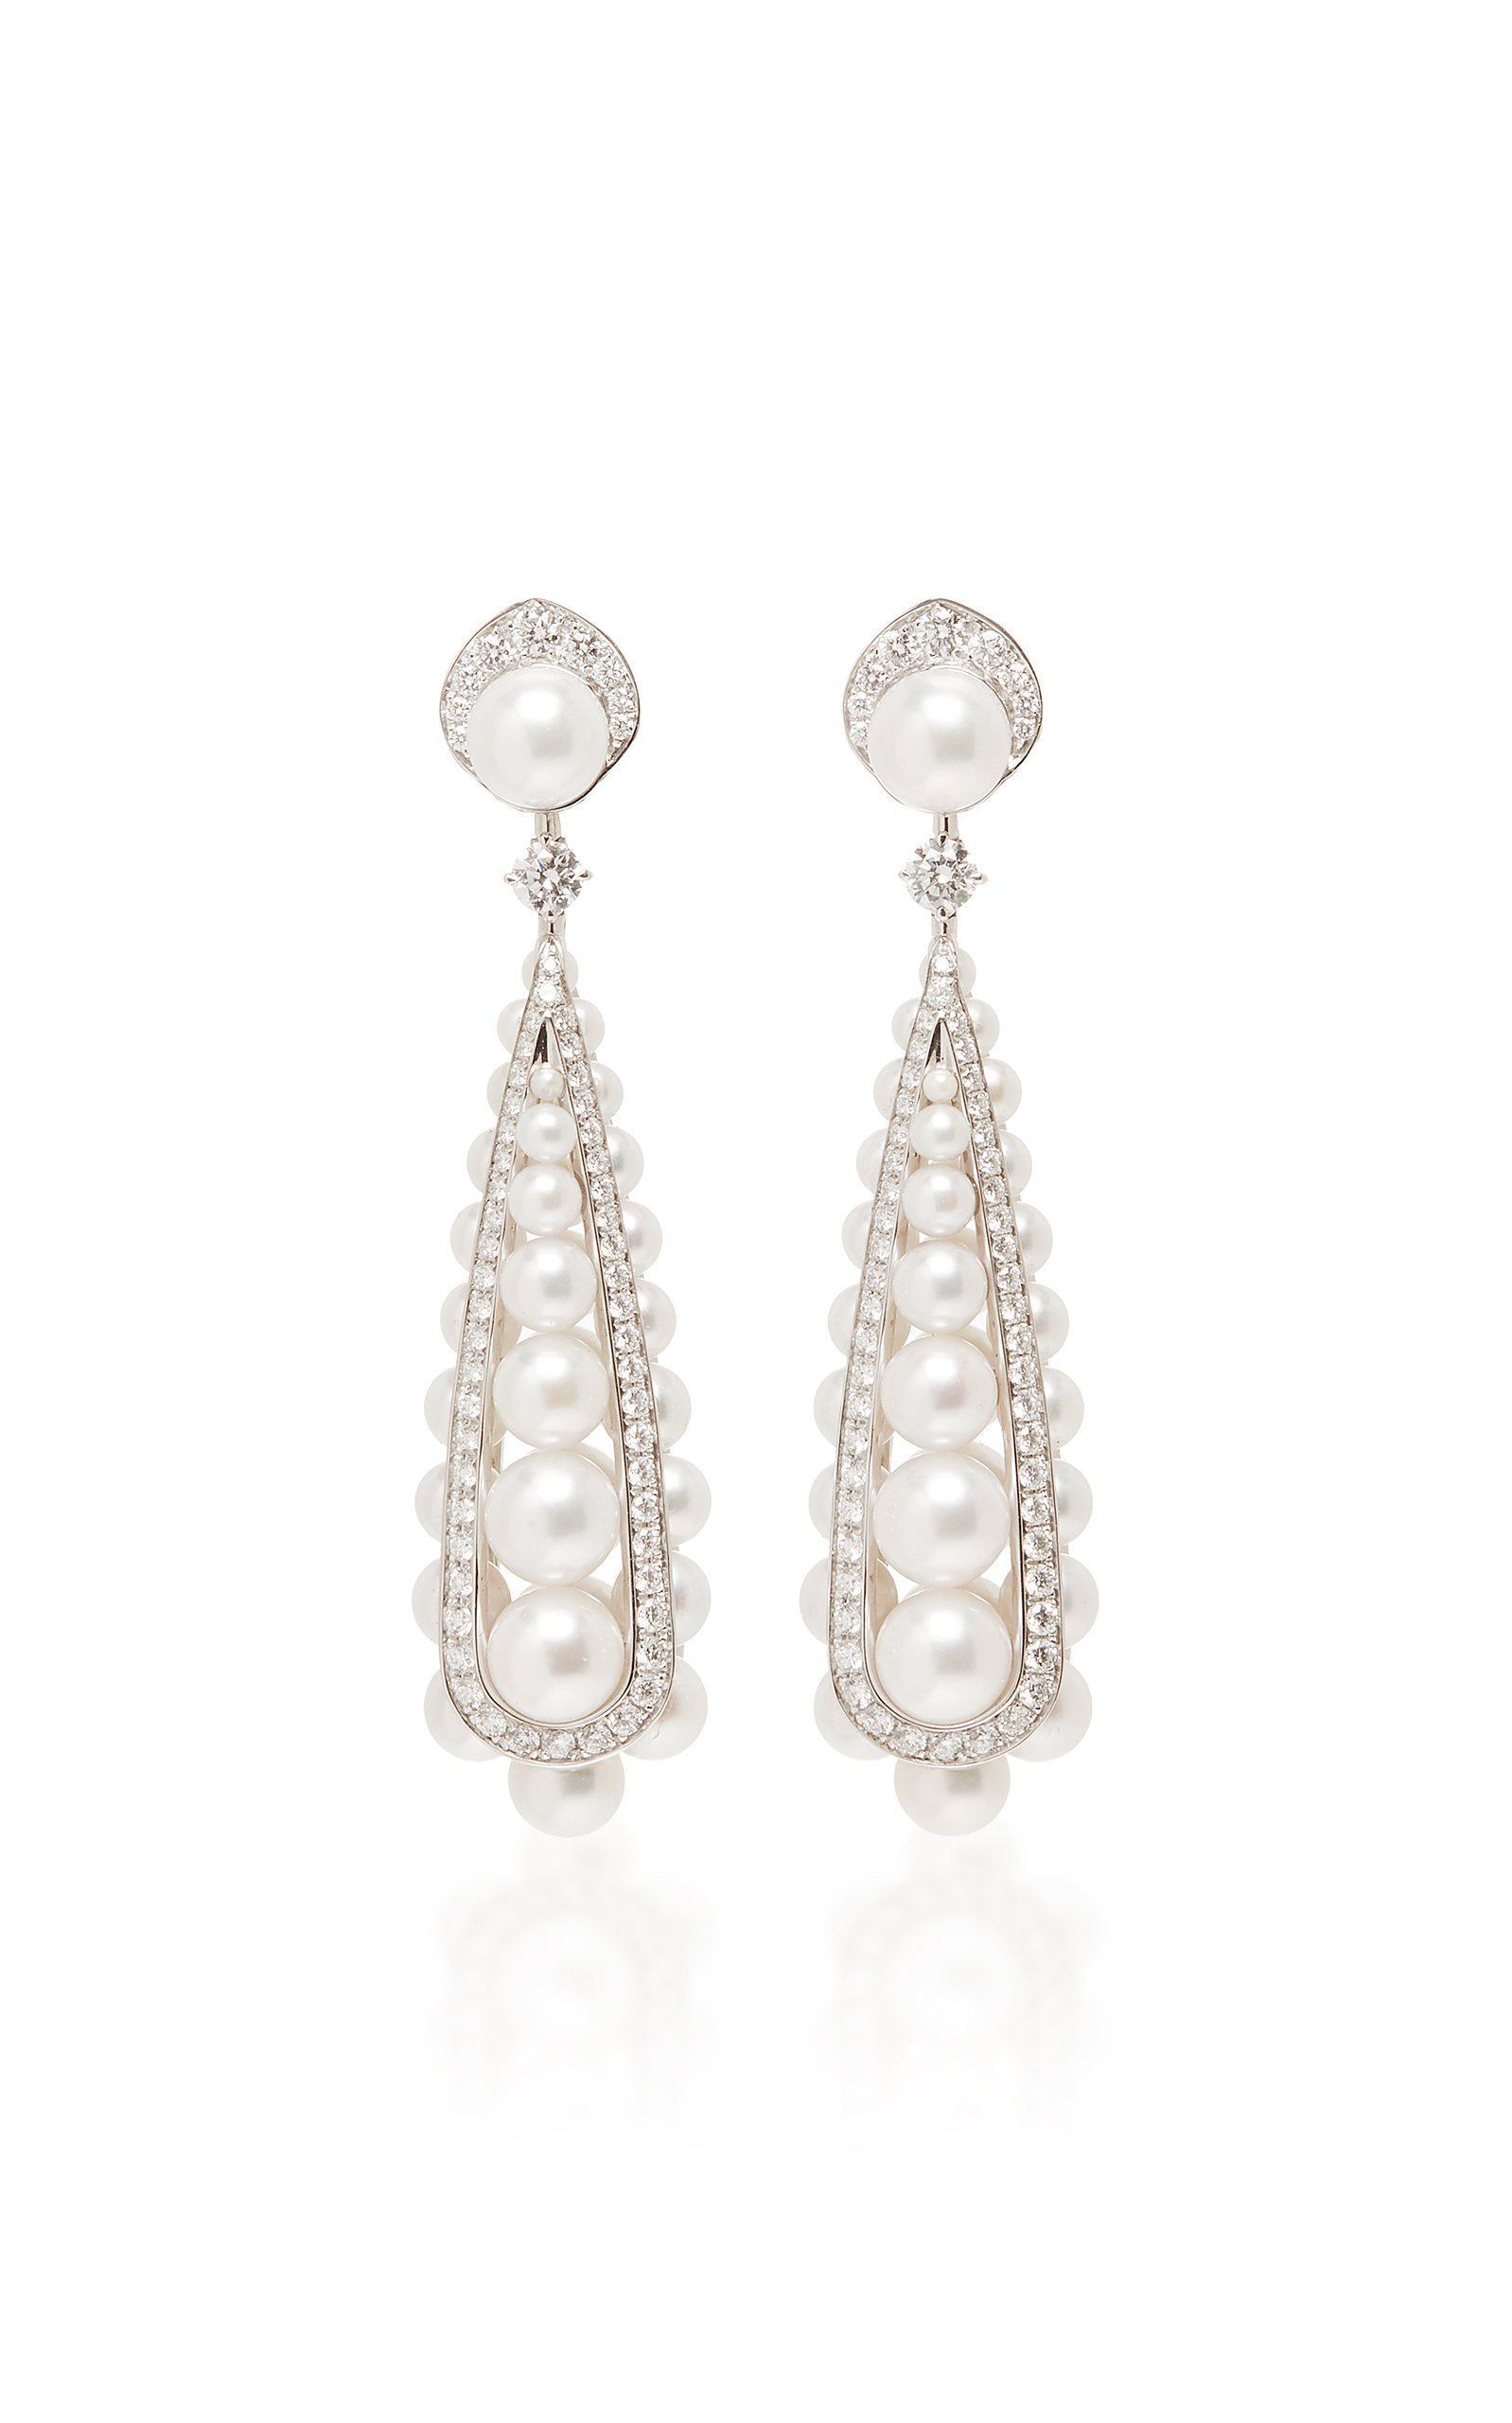 David Morris Pearl Rose Earrings